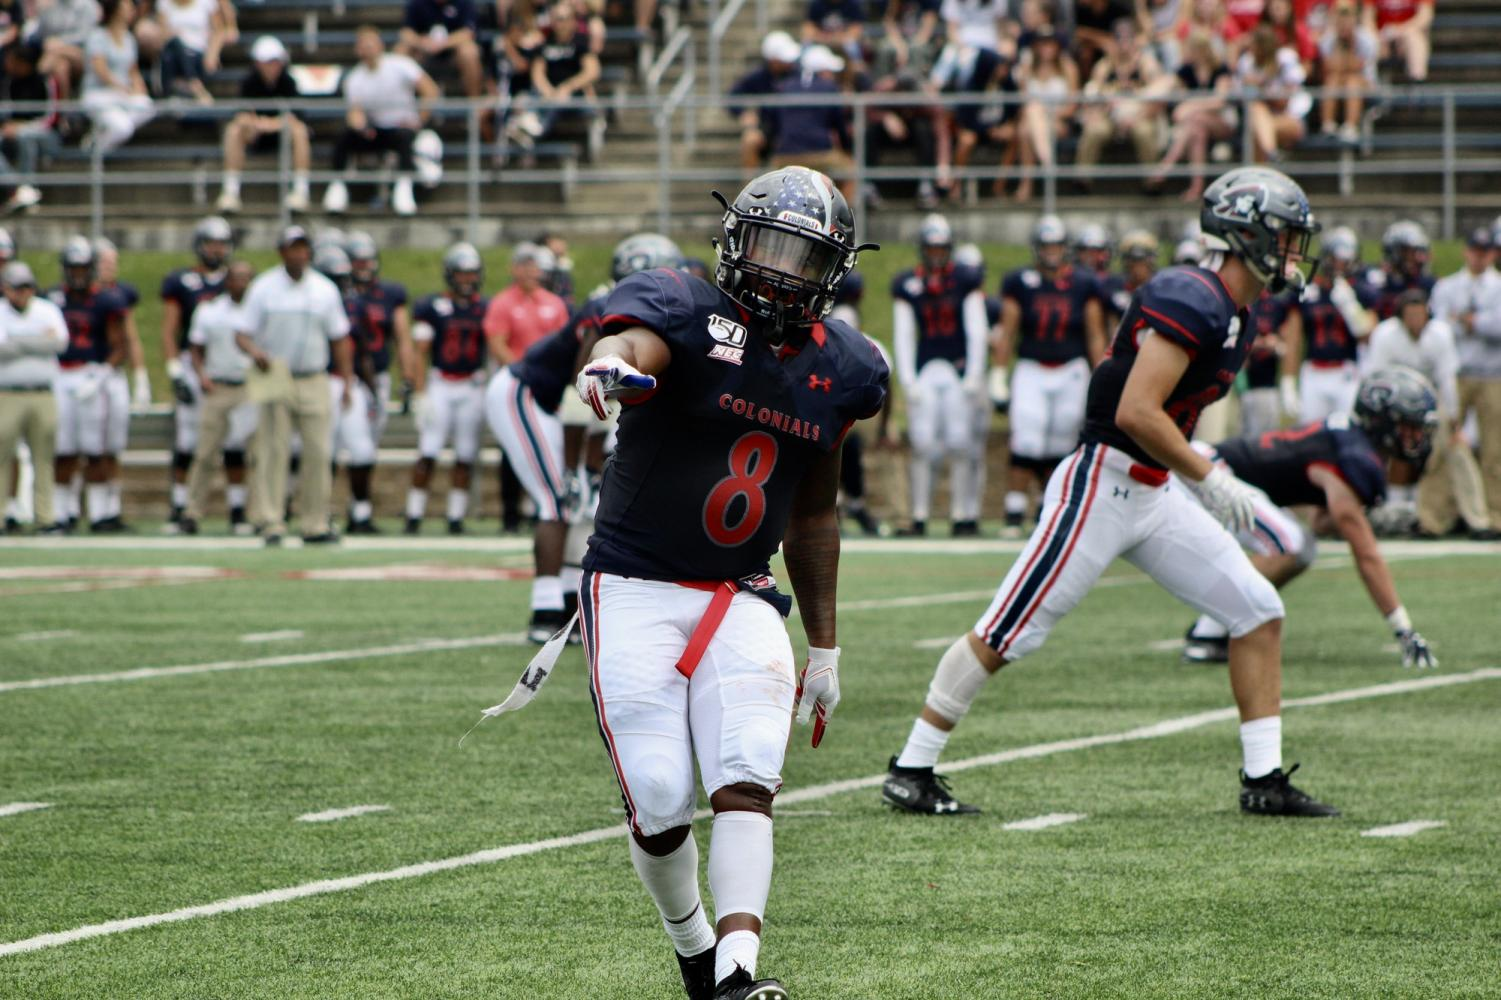 Football wins big against Duquesne, now one win away from NEC championship